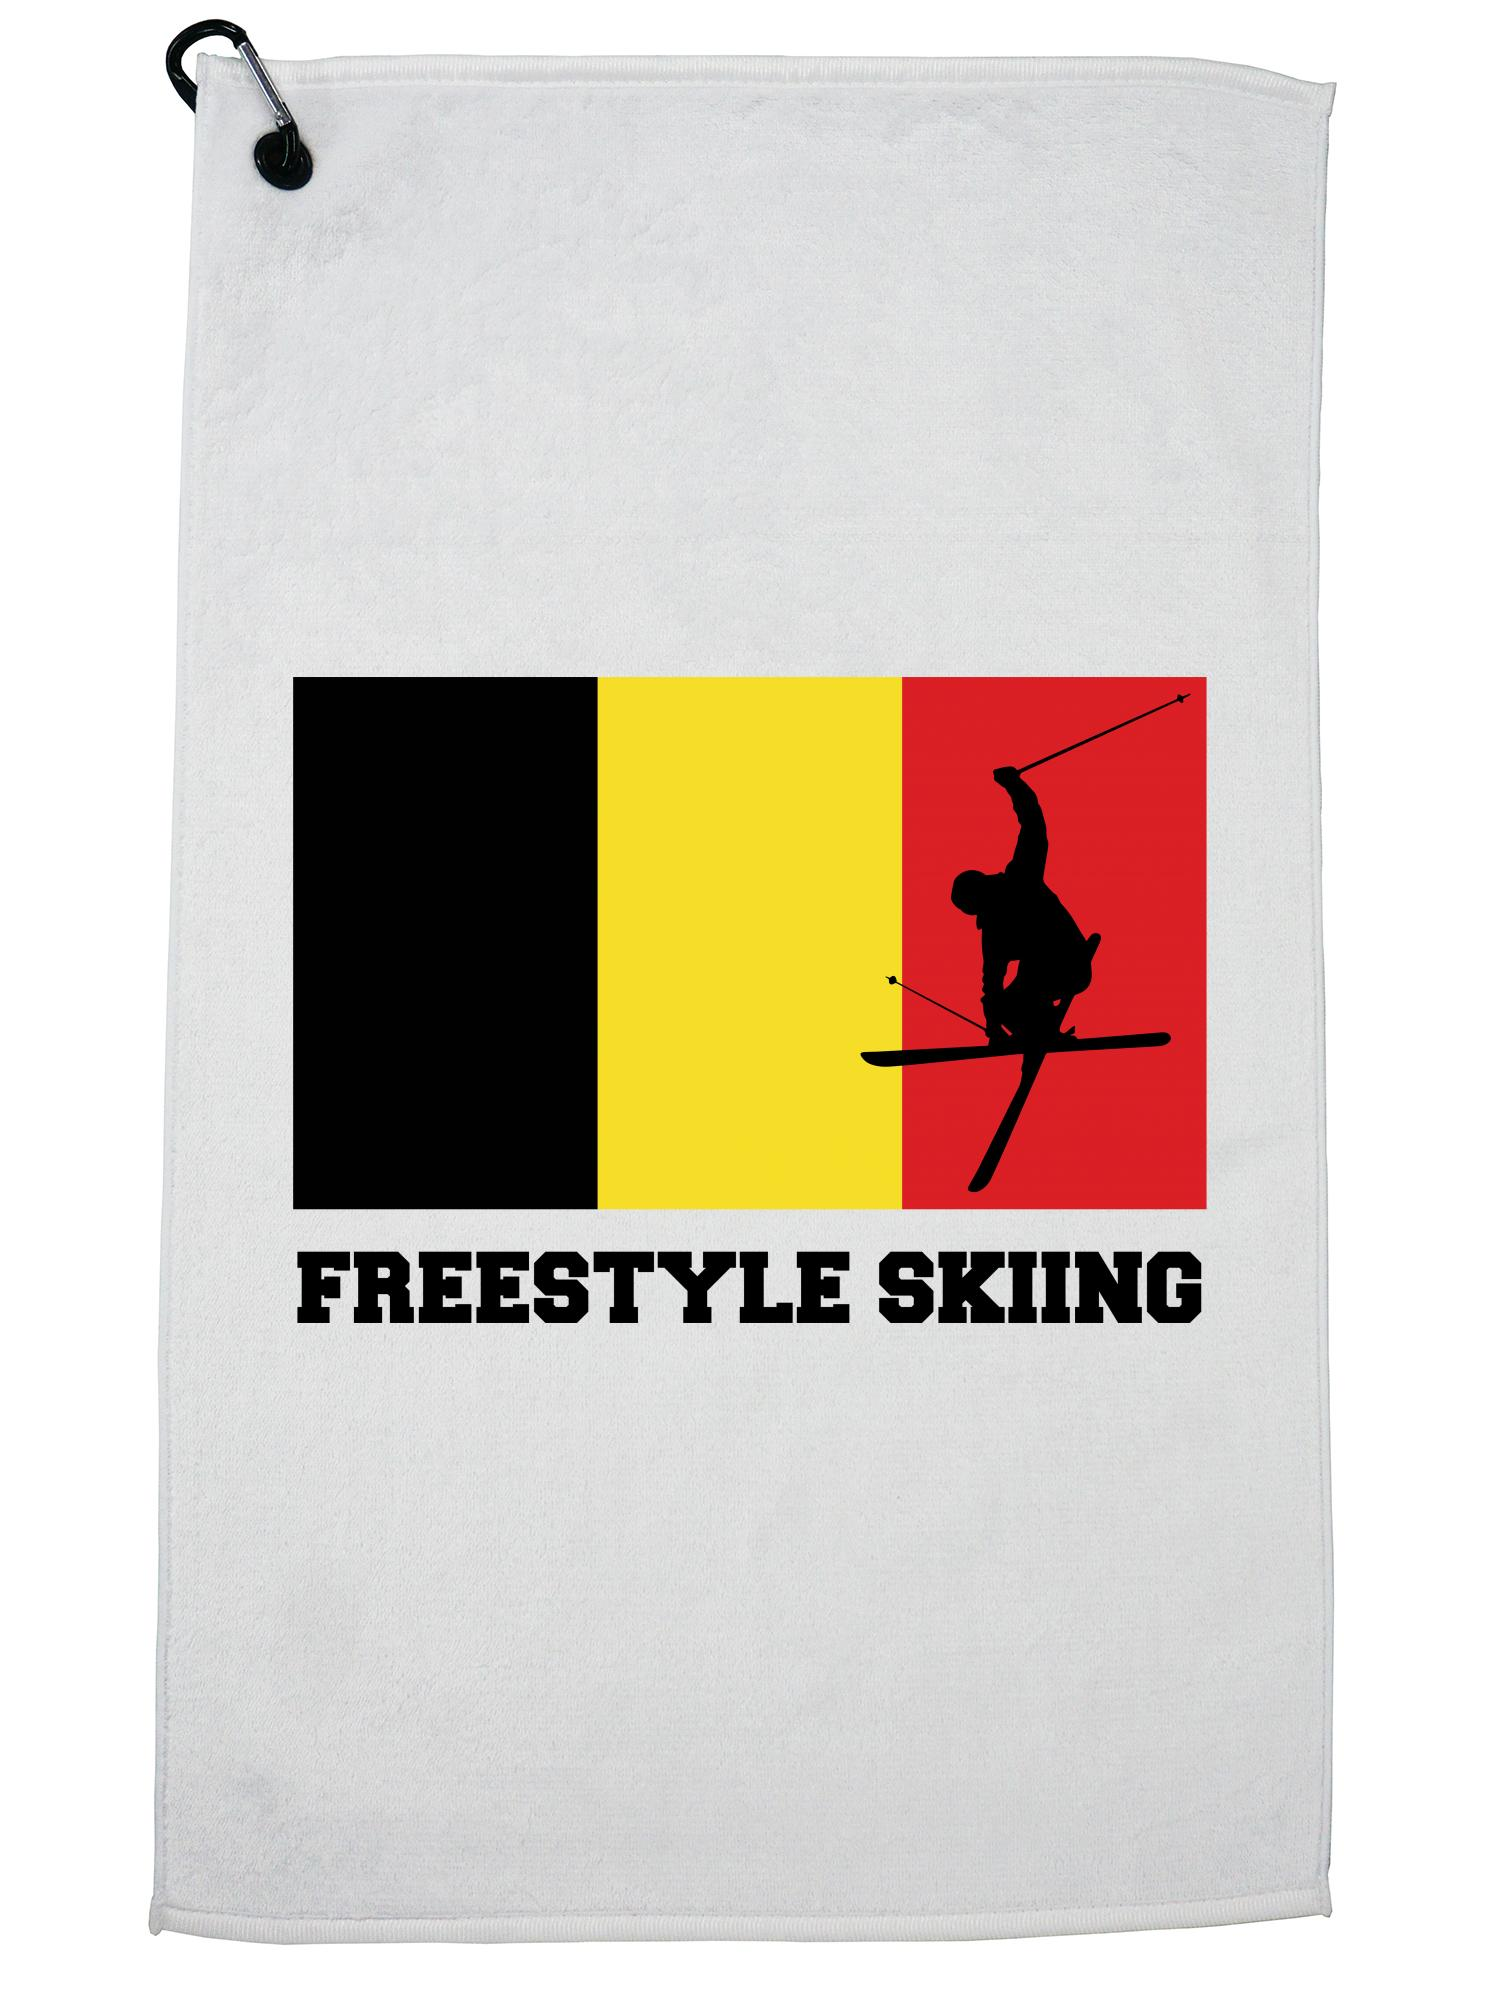 Belgium Olympic Freestyle Skiing Flag Silhouette Golf Towel with Carabiner Clip by Hollywood Thread